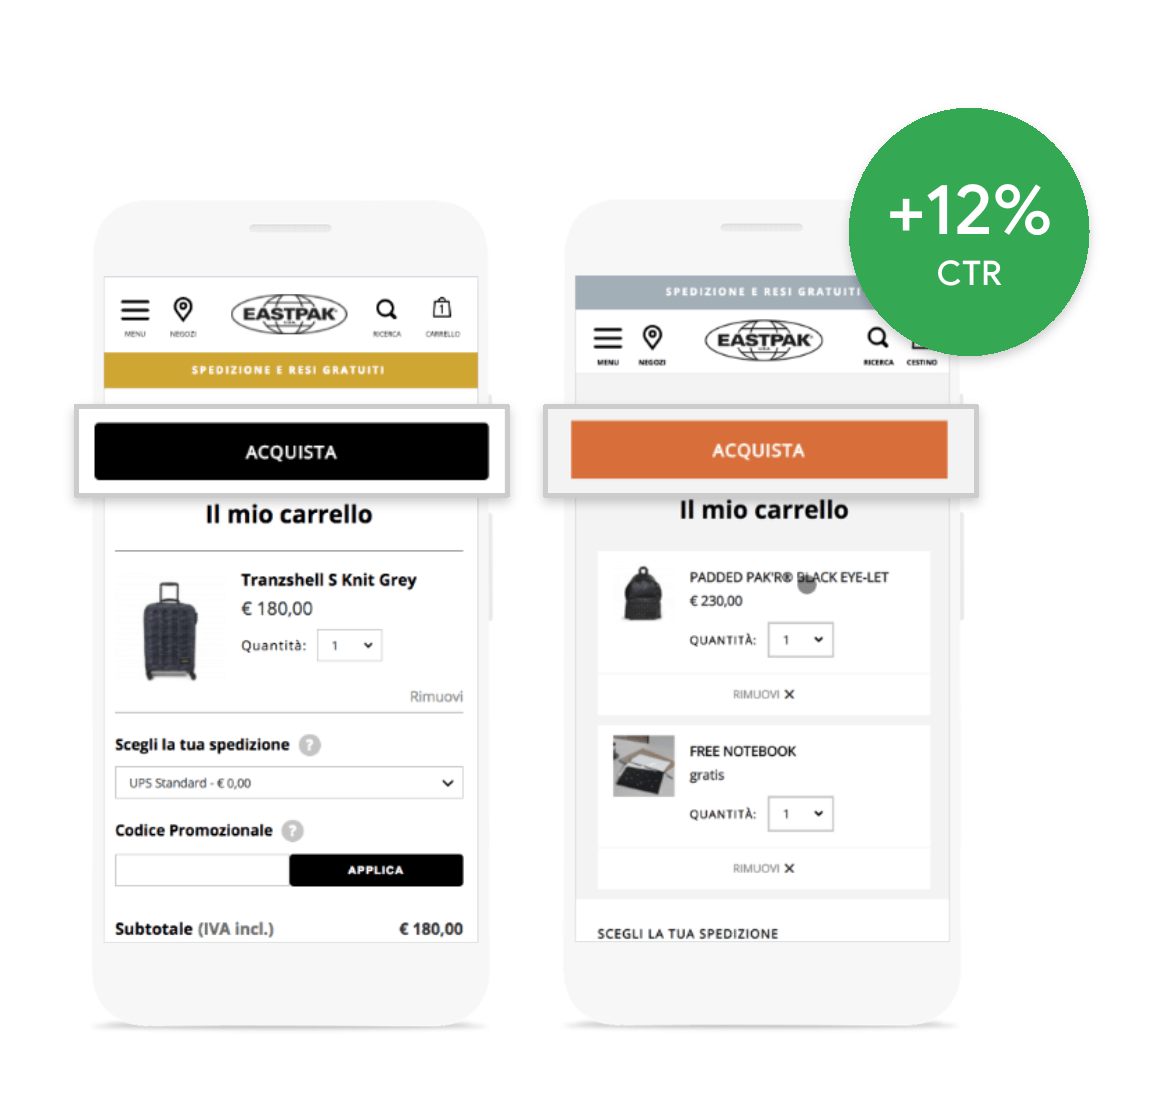 Eastpak improving the color contrast of their checkout button lead to a 12% increase in conversion rate.(Source: Google)